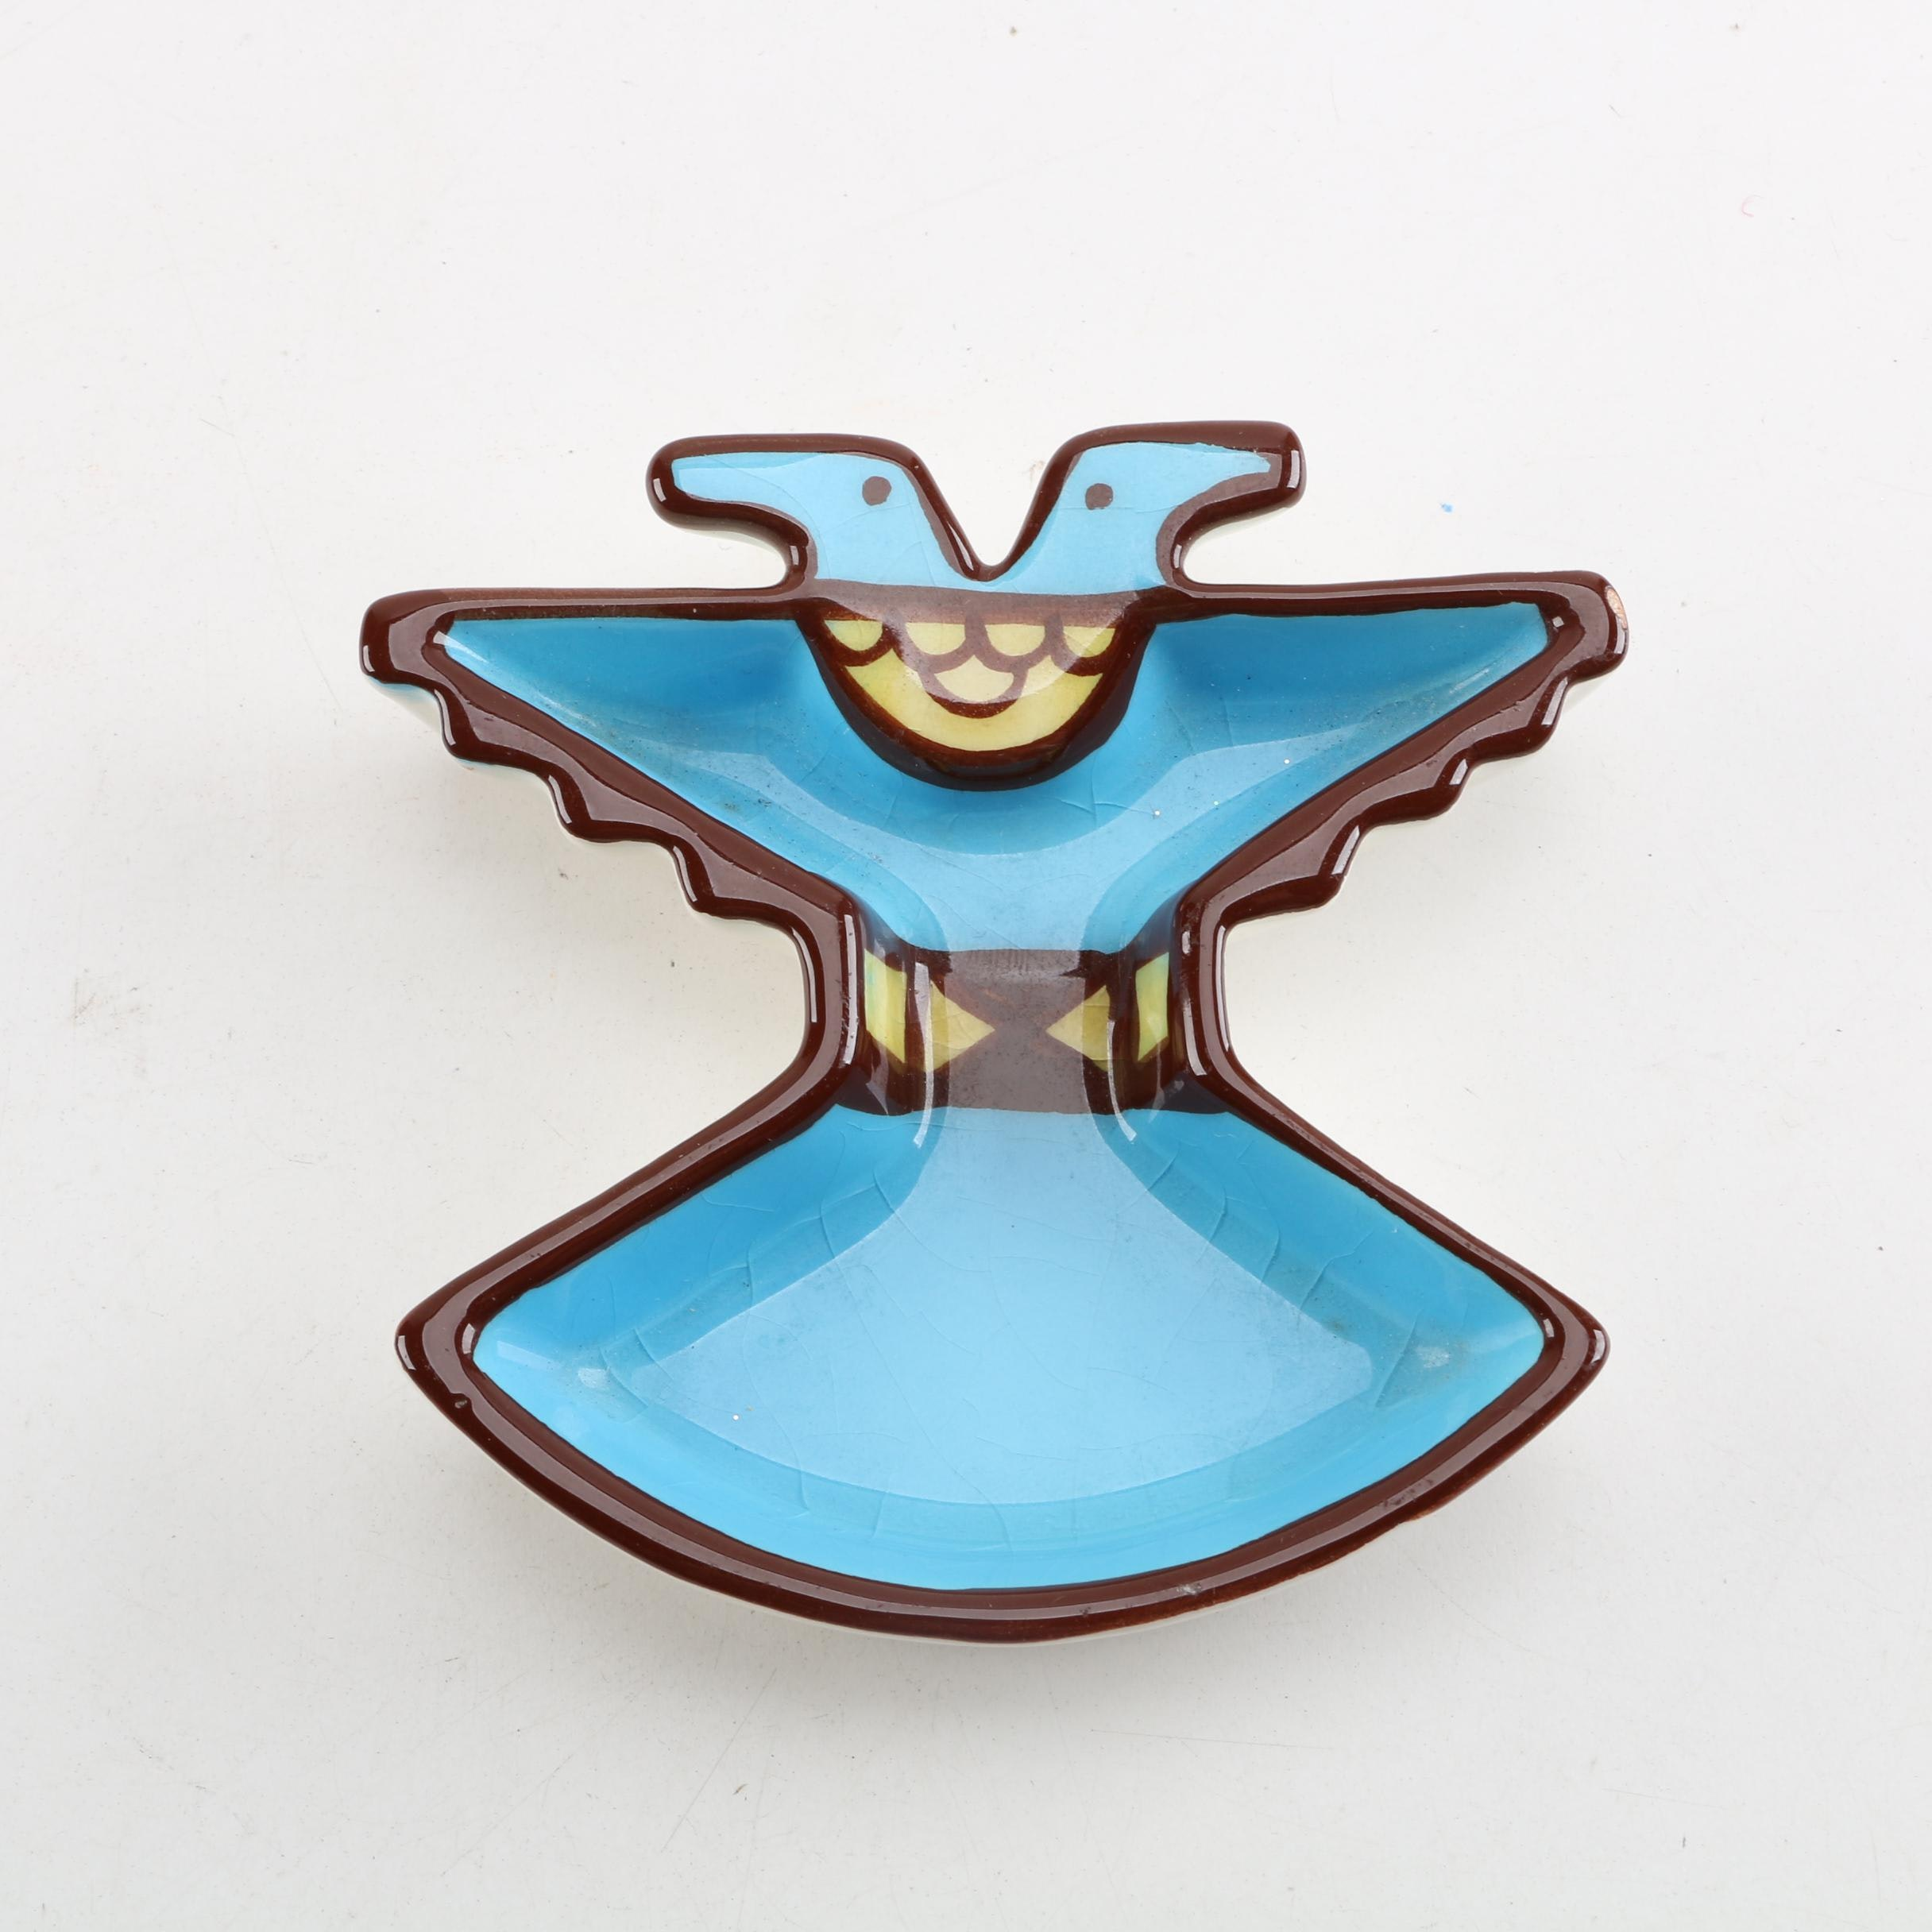 Vintage Sims Native American-Themed Thunderbird Pin Dish